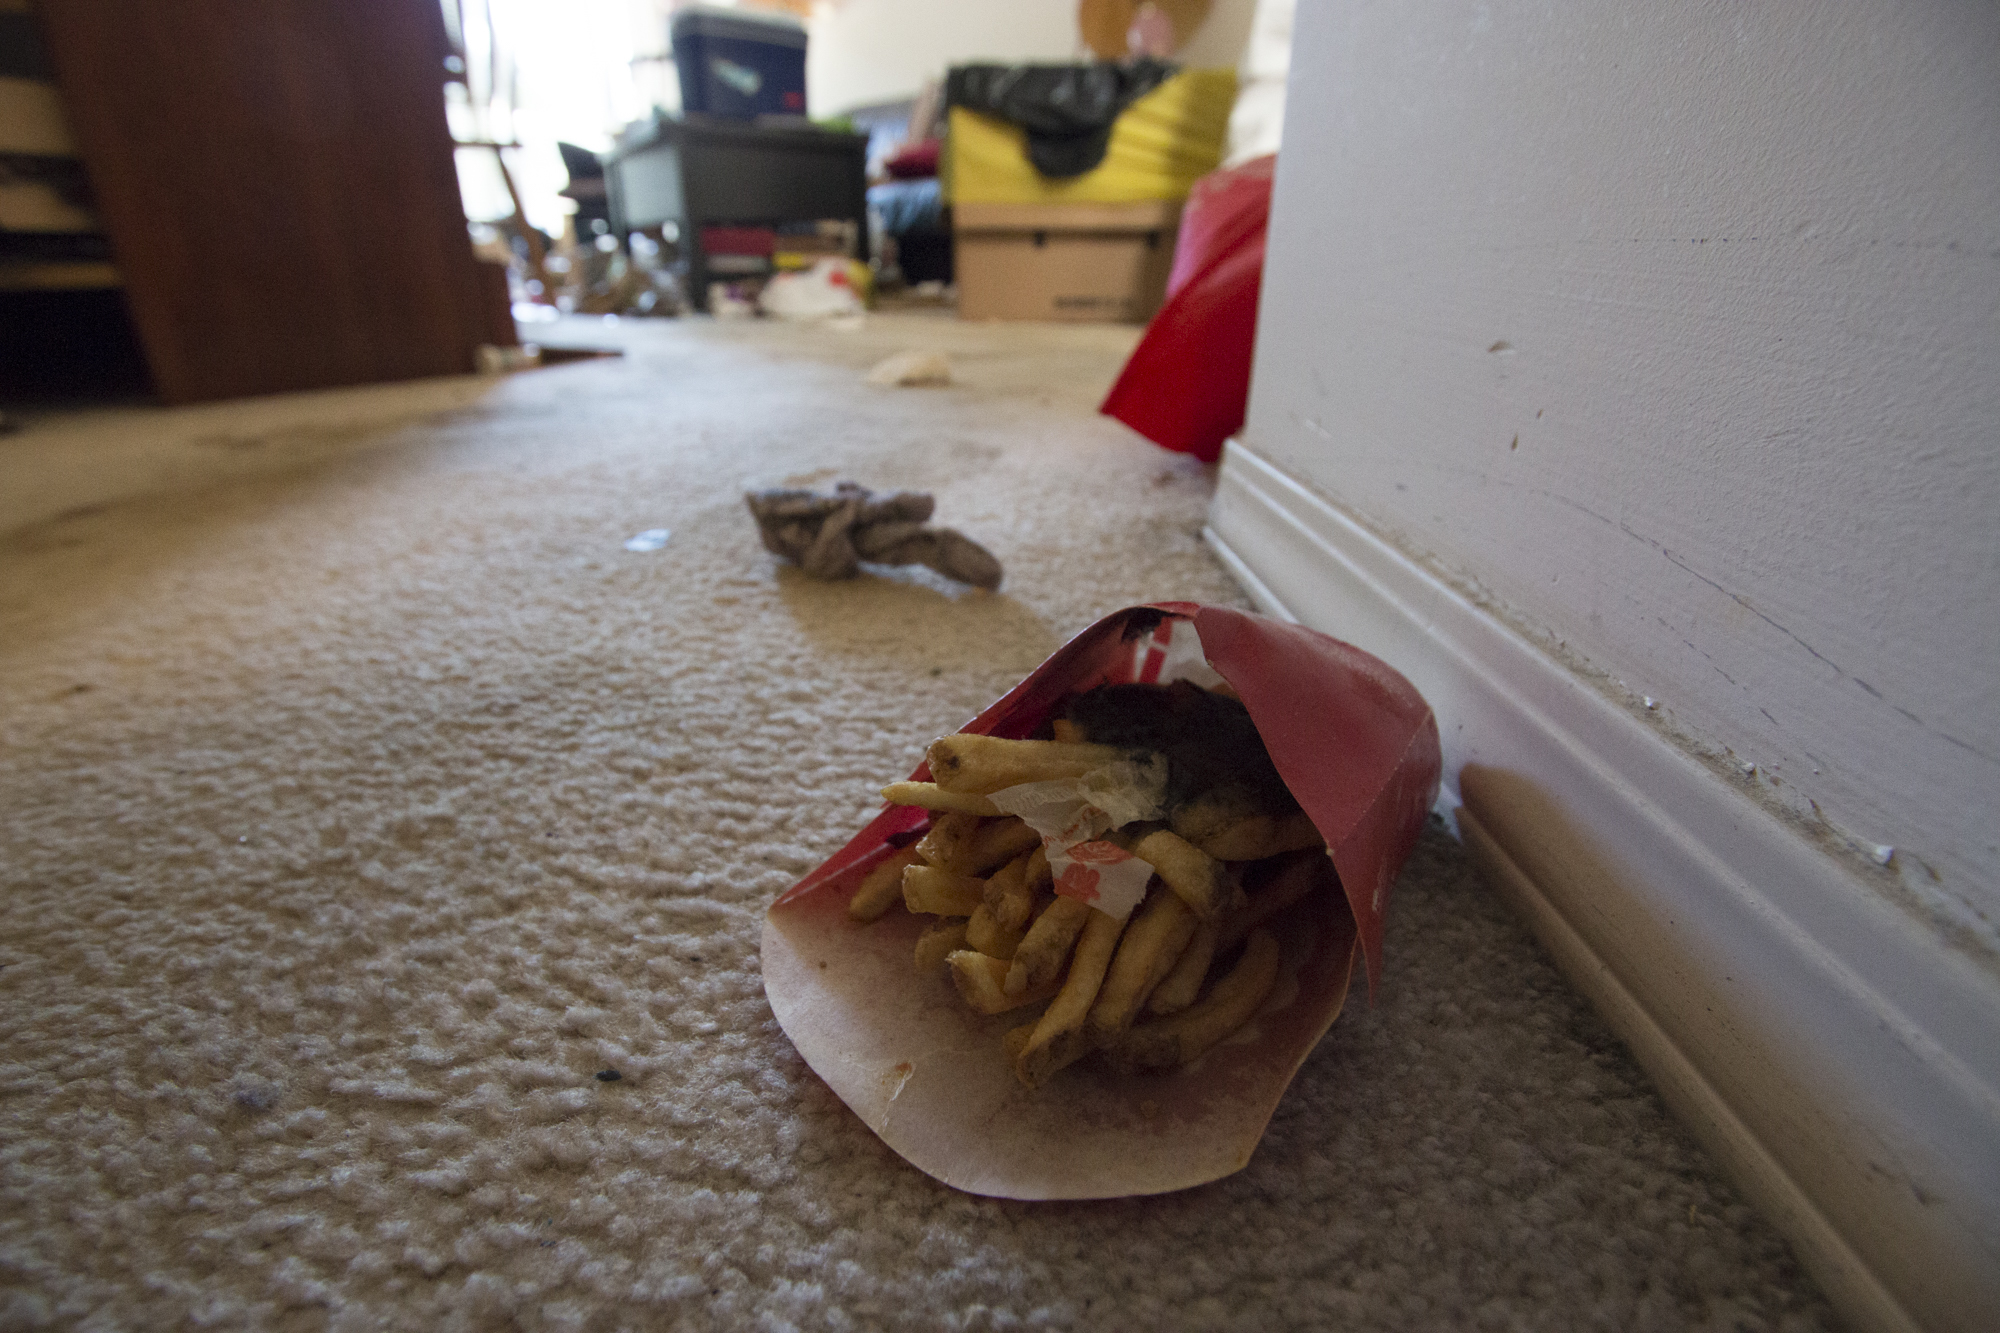 Half-eaten takeout was strewn throughout the apartment. (Maryse Zeidler/CBC)